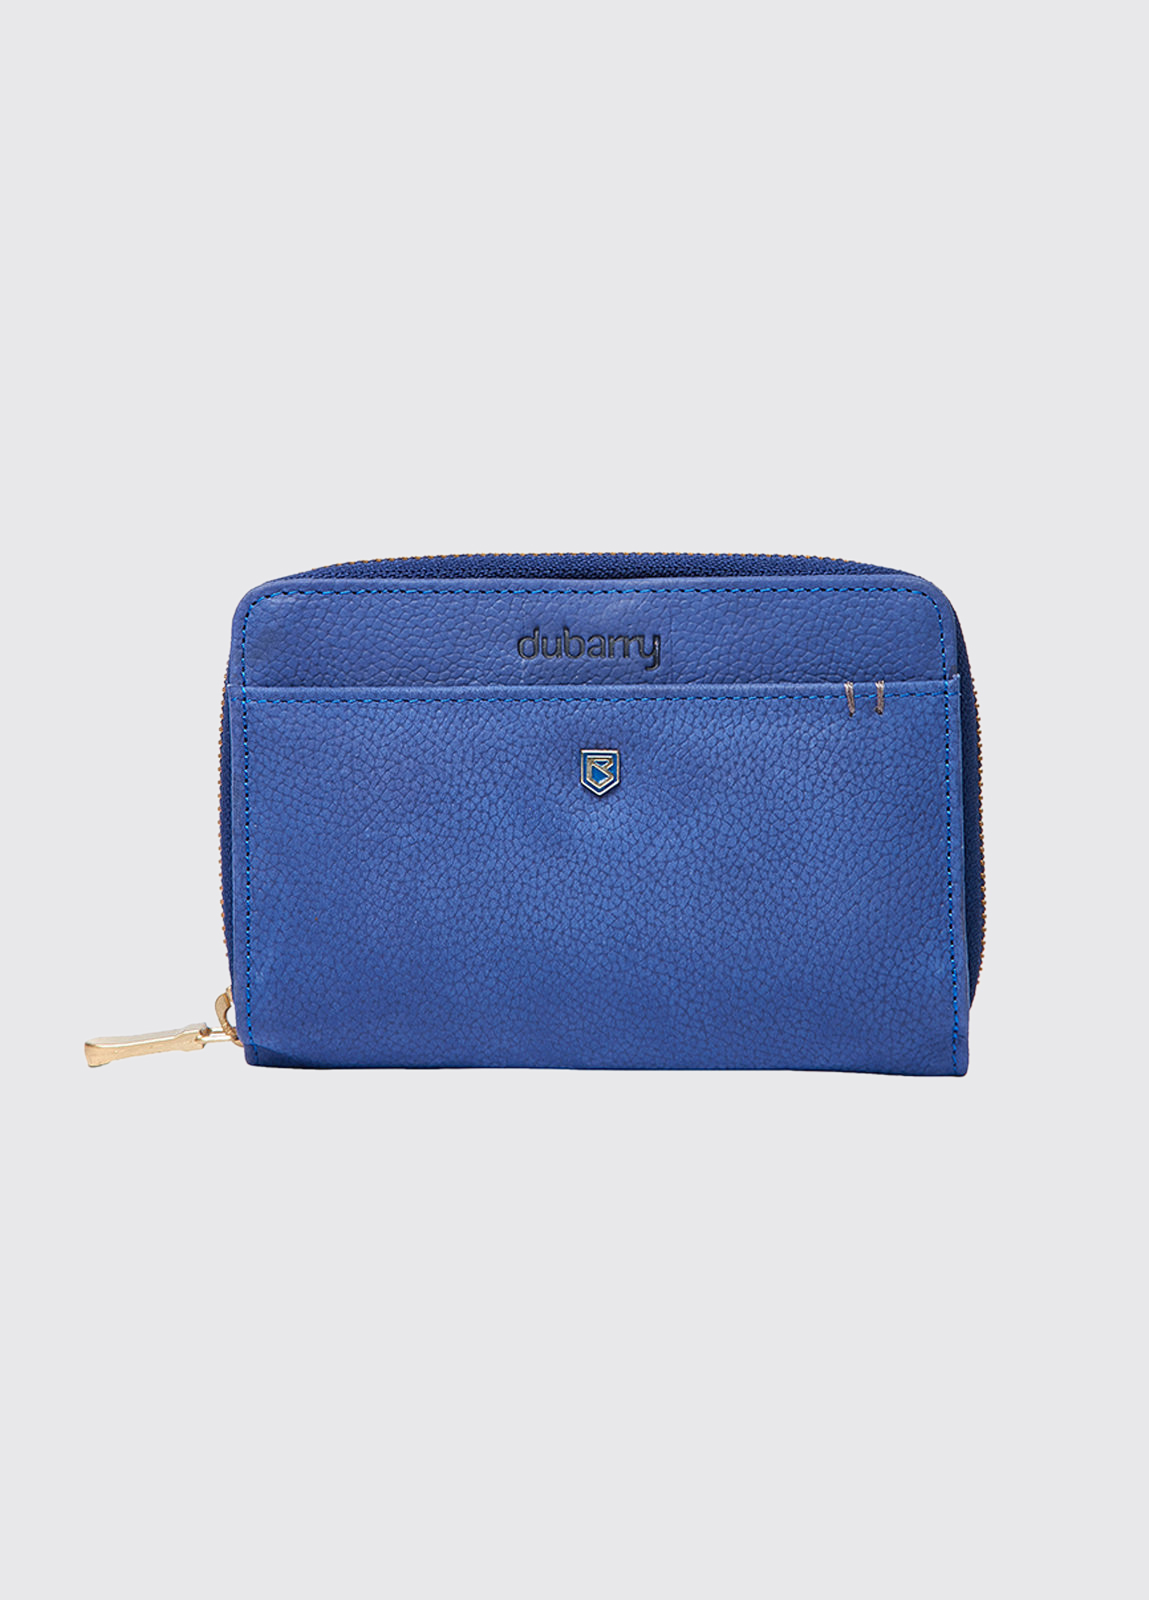 Portrush Leather Wallet - Cobalt